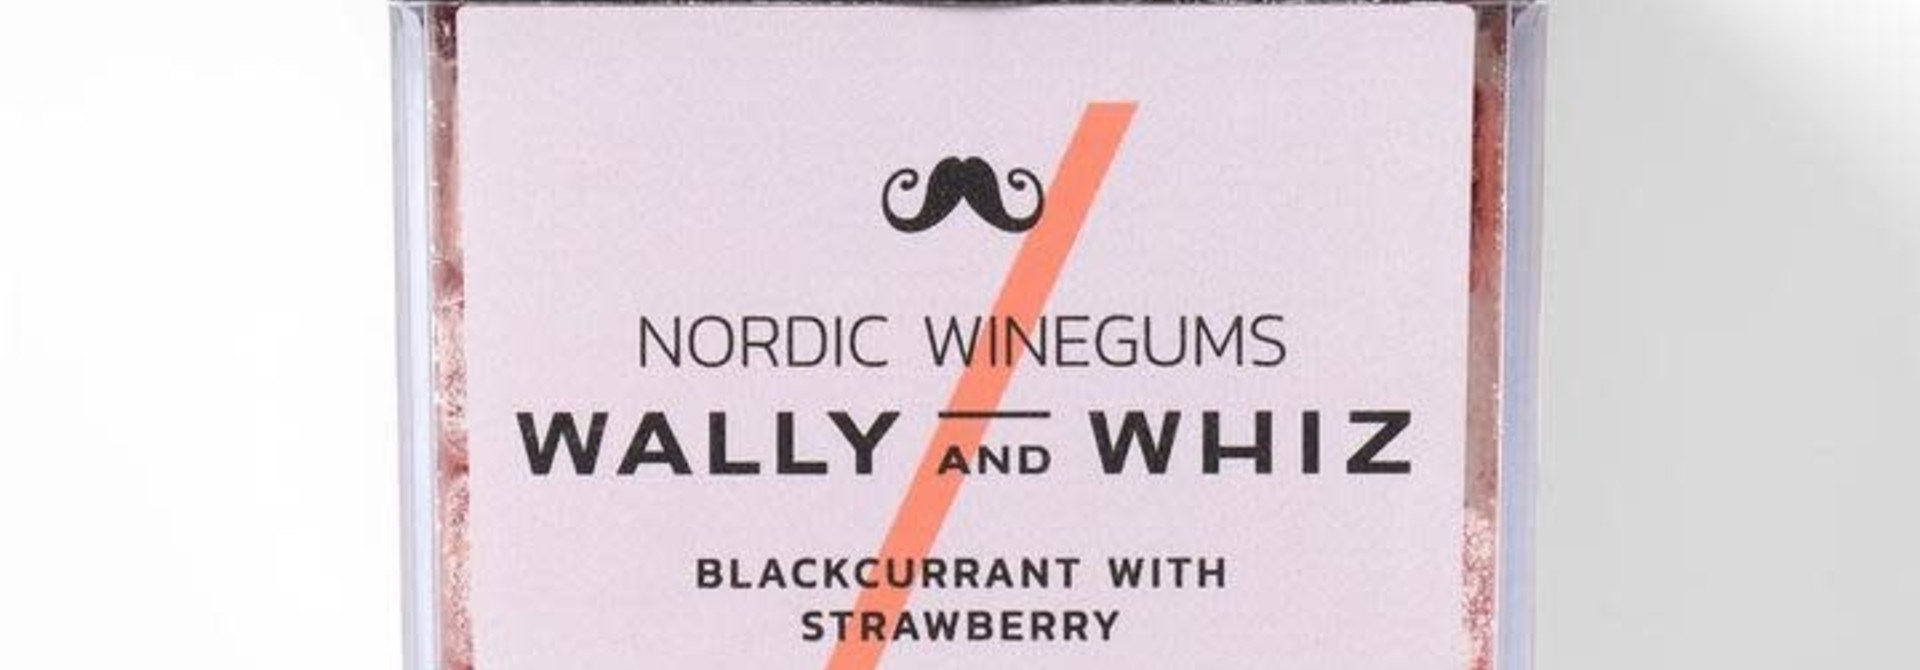 Blackcurrant with Strawberry